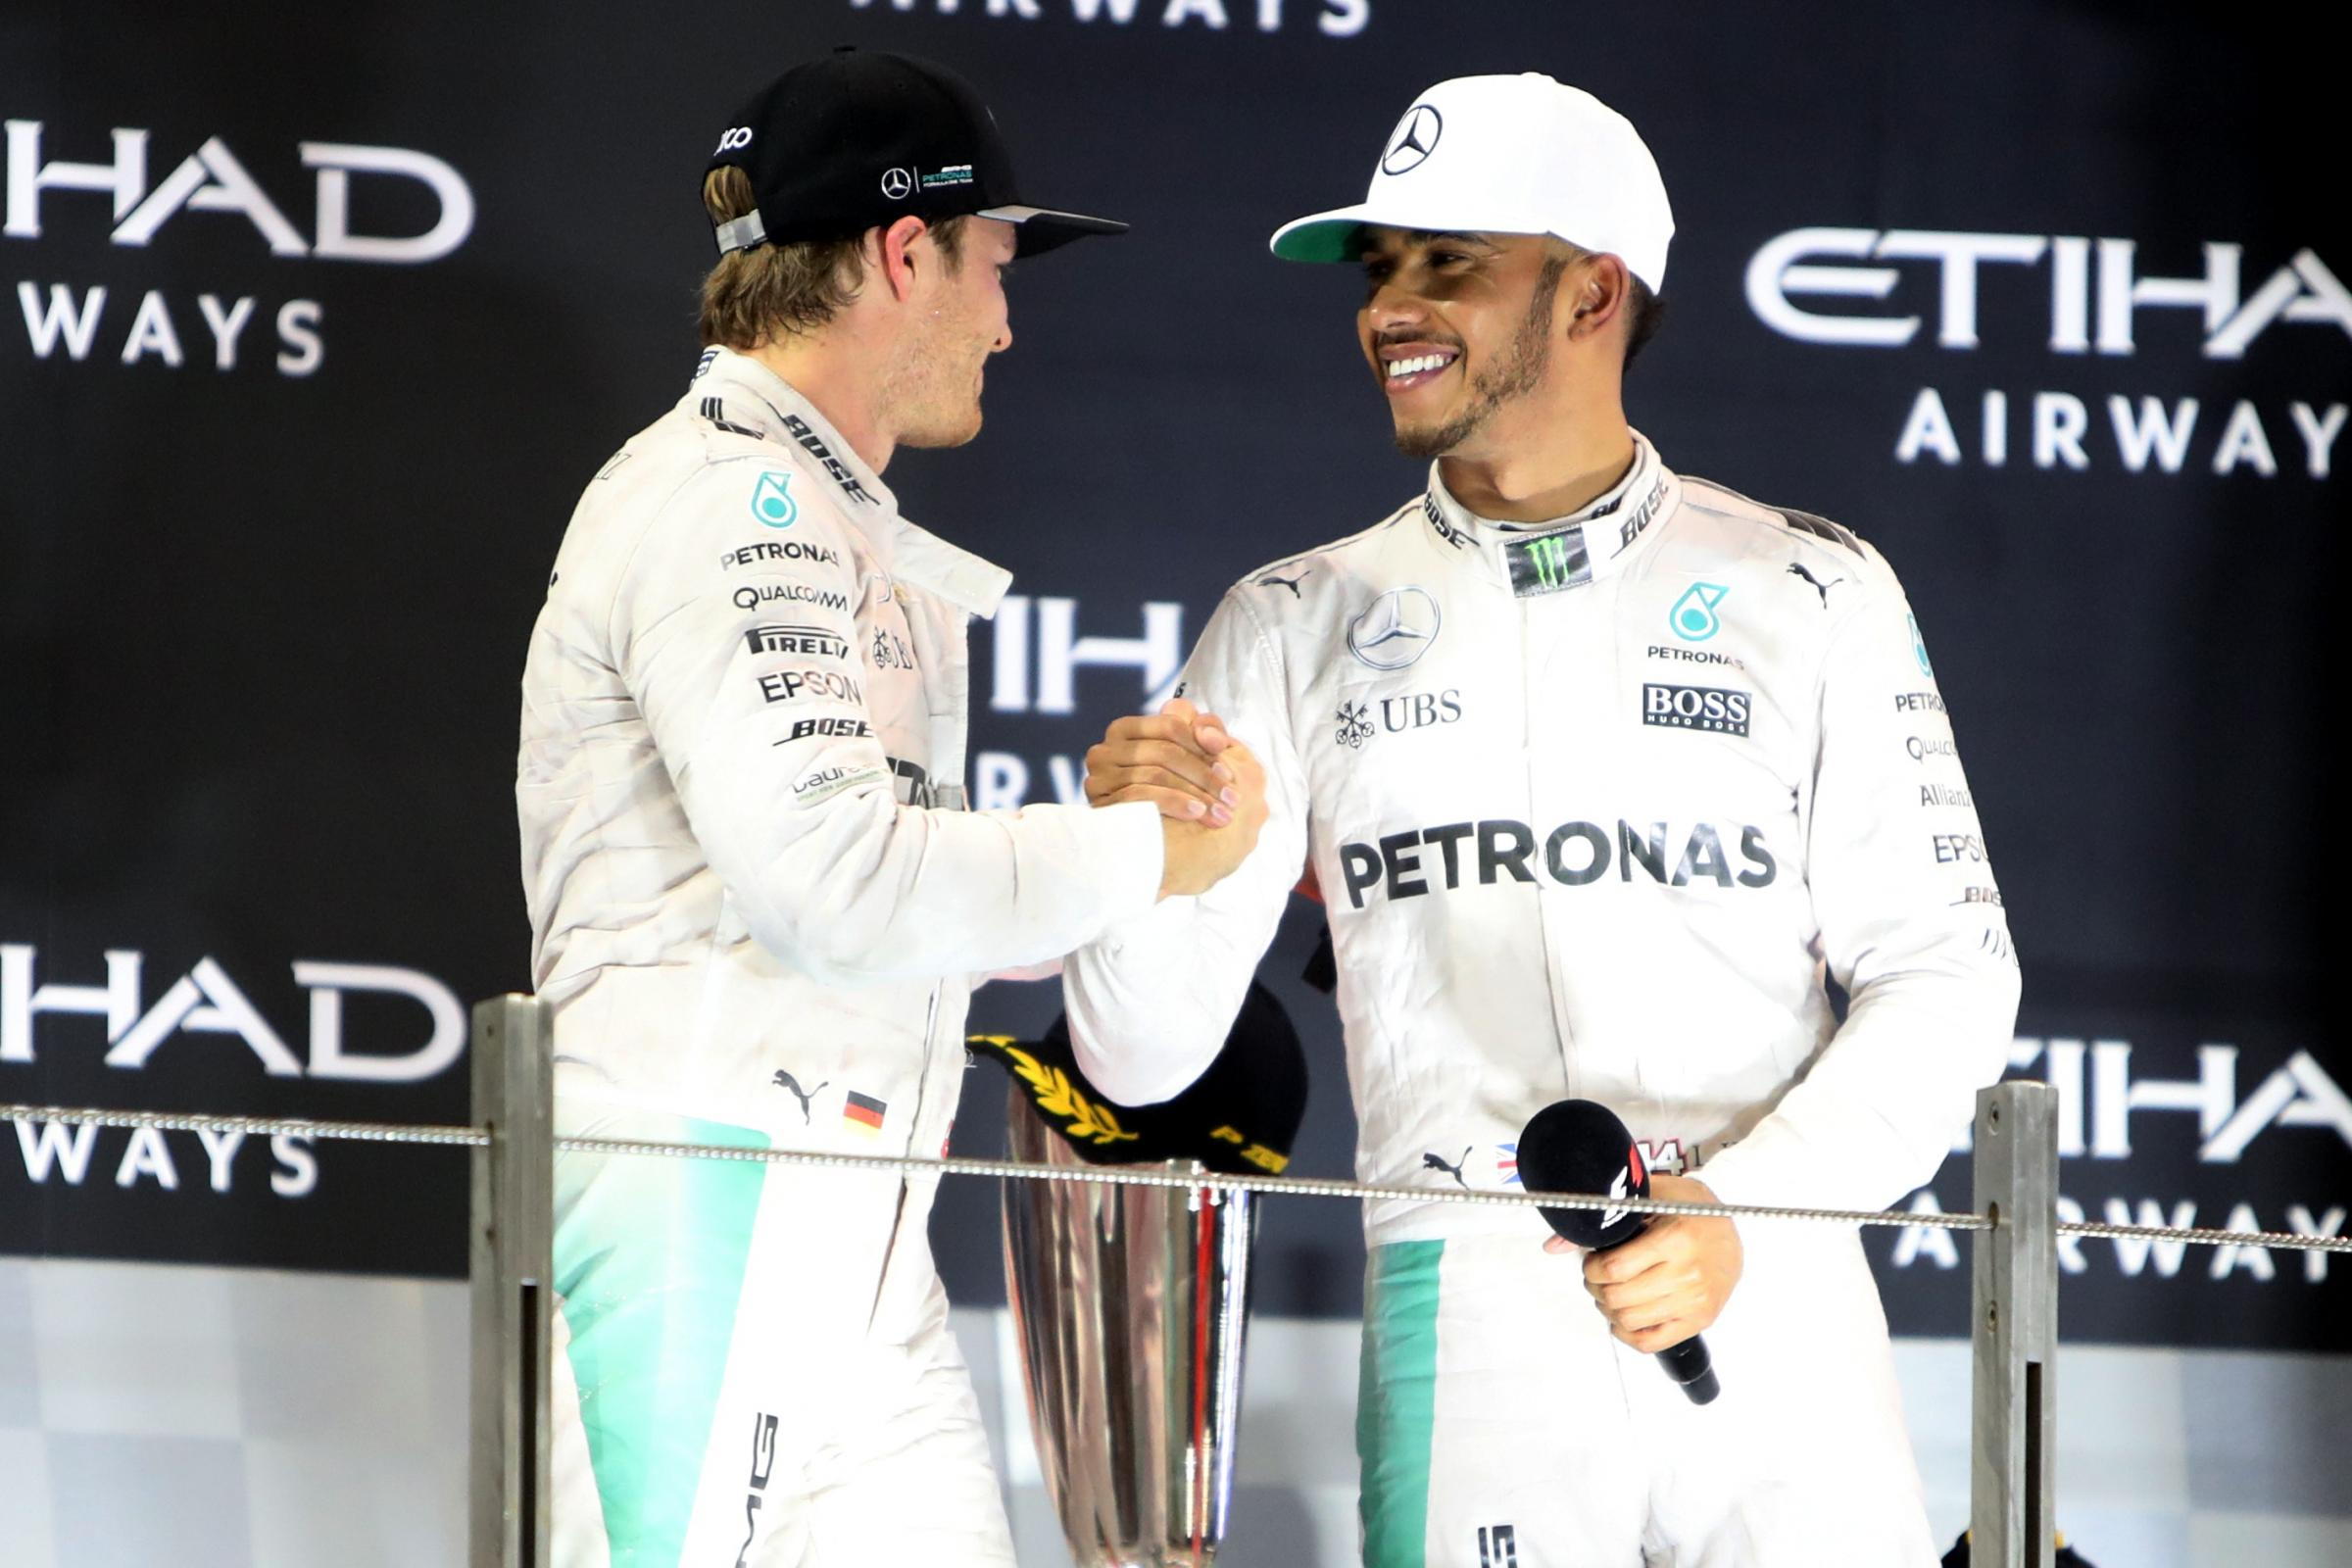 Nico Rosberg (left) has backed Lewis Hamilton (right) to claim a sixth world title this season